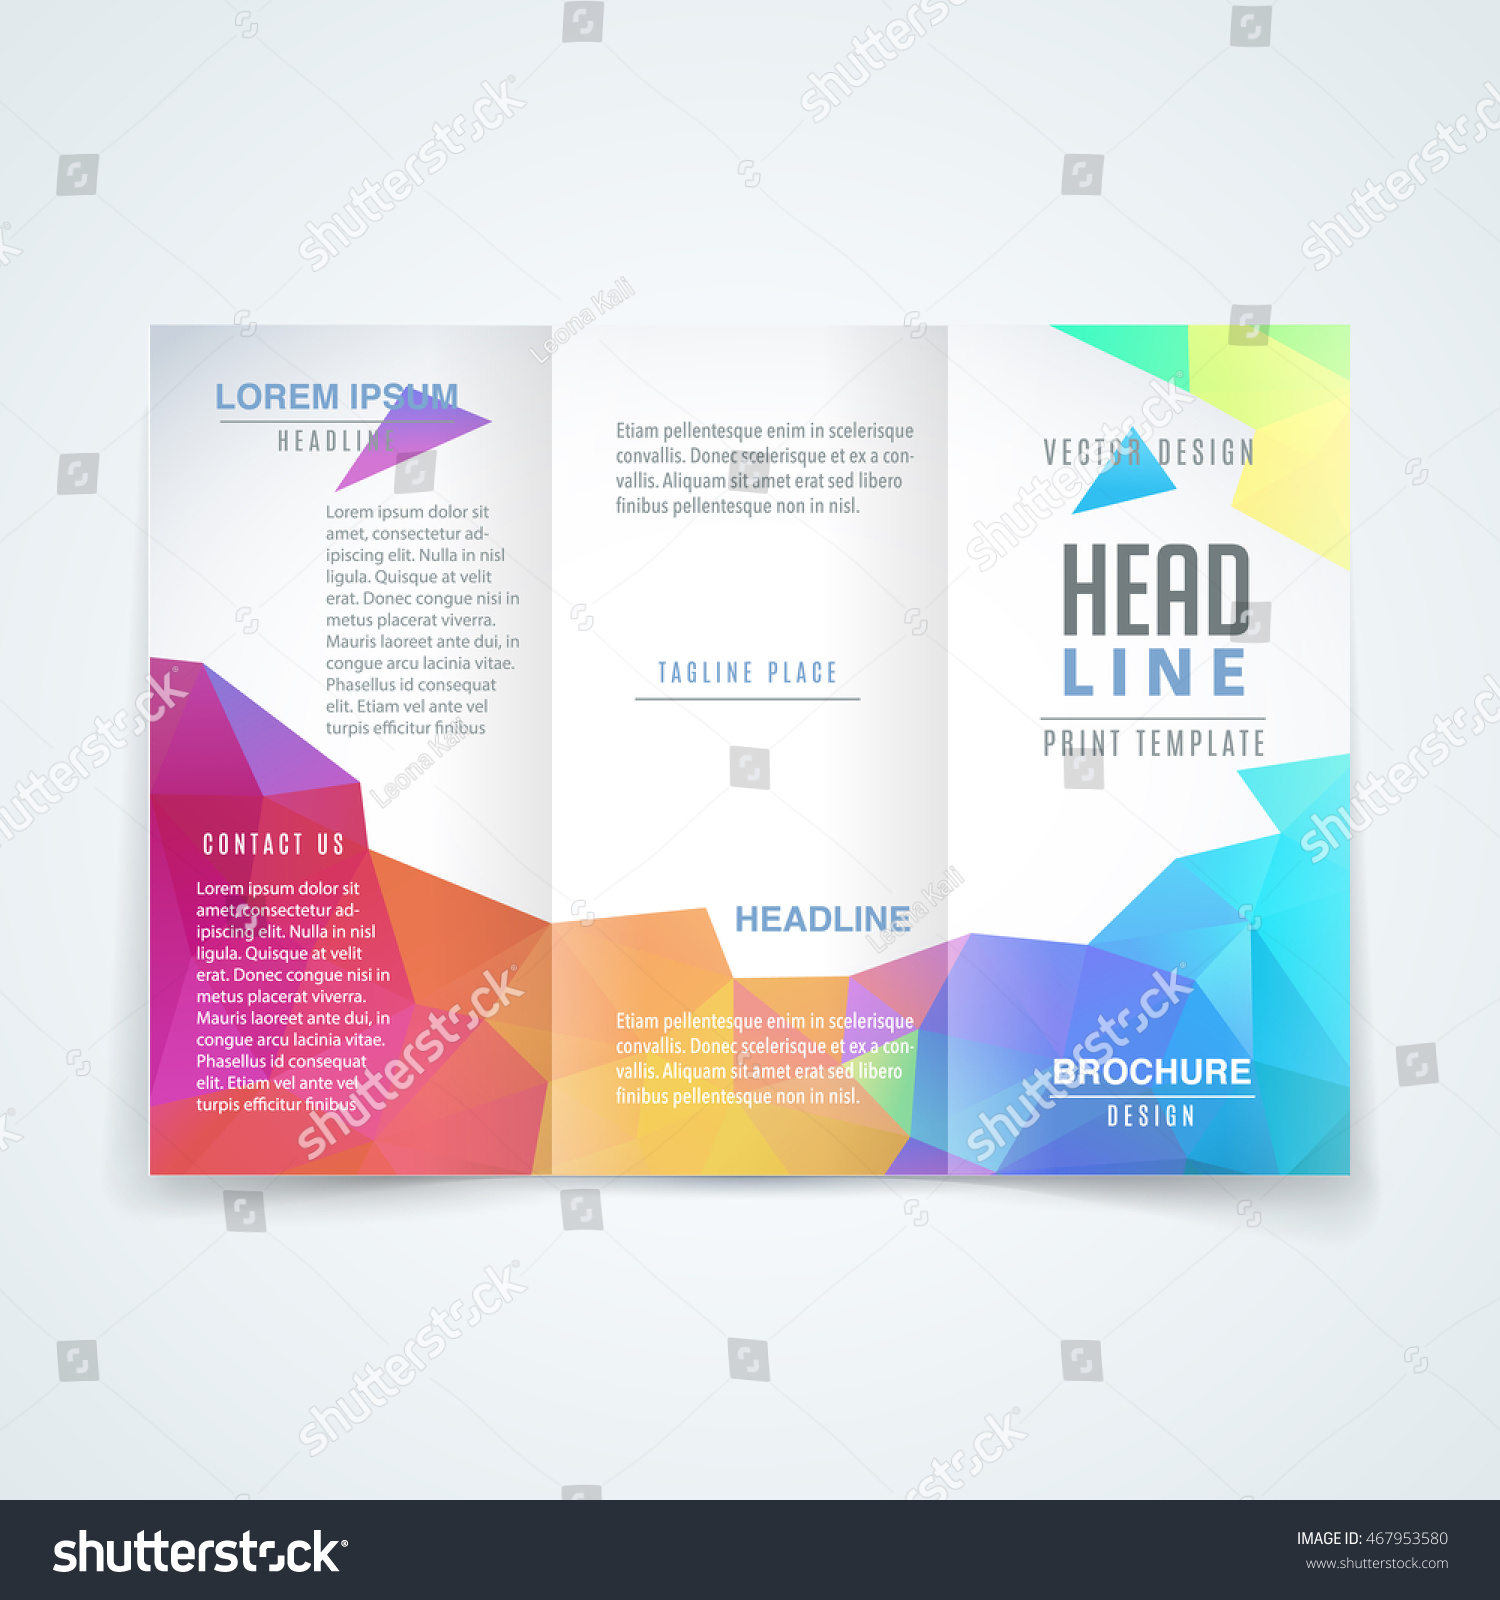 Best brochure design lx91 regardsdefemmes for Modern brochure design templates